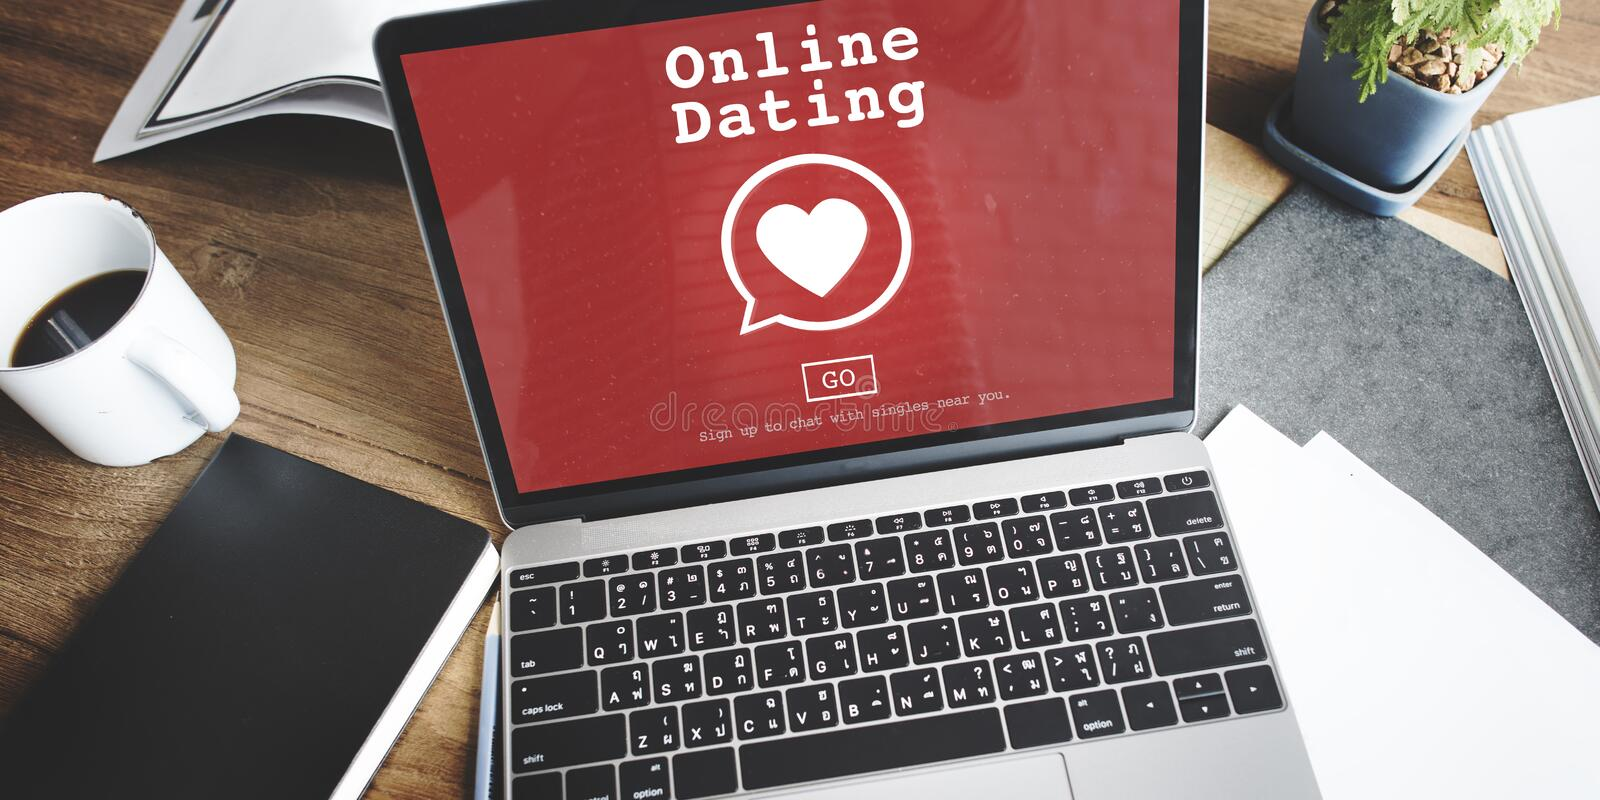 Online Dating Digital Matchmaking Technology Concept stock photography